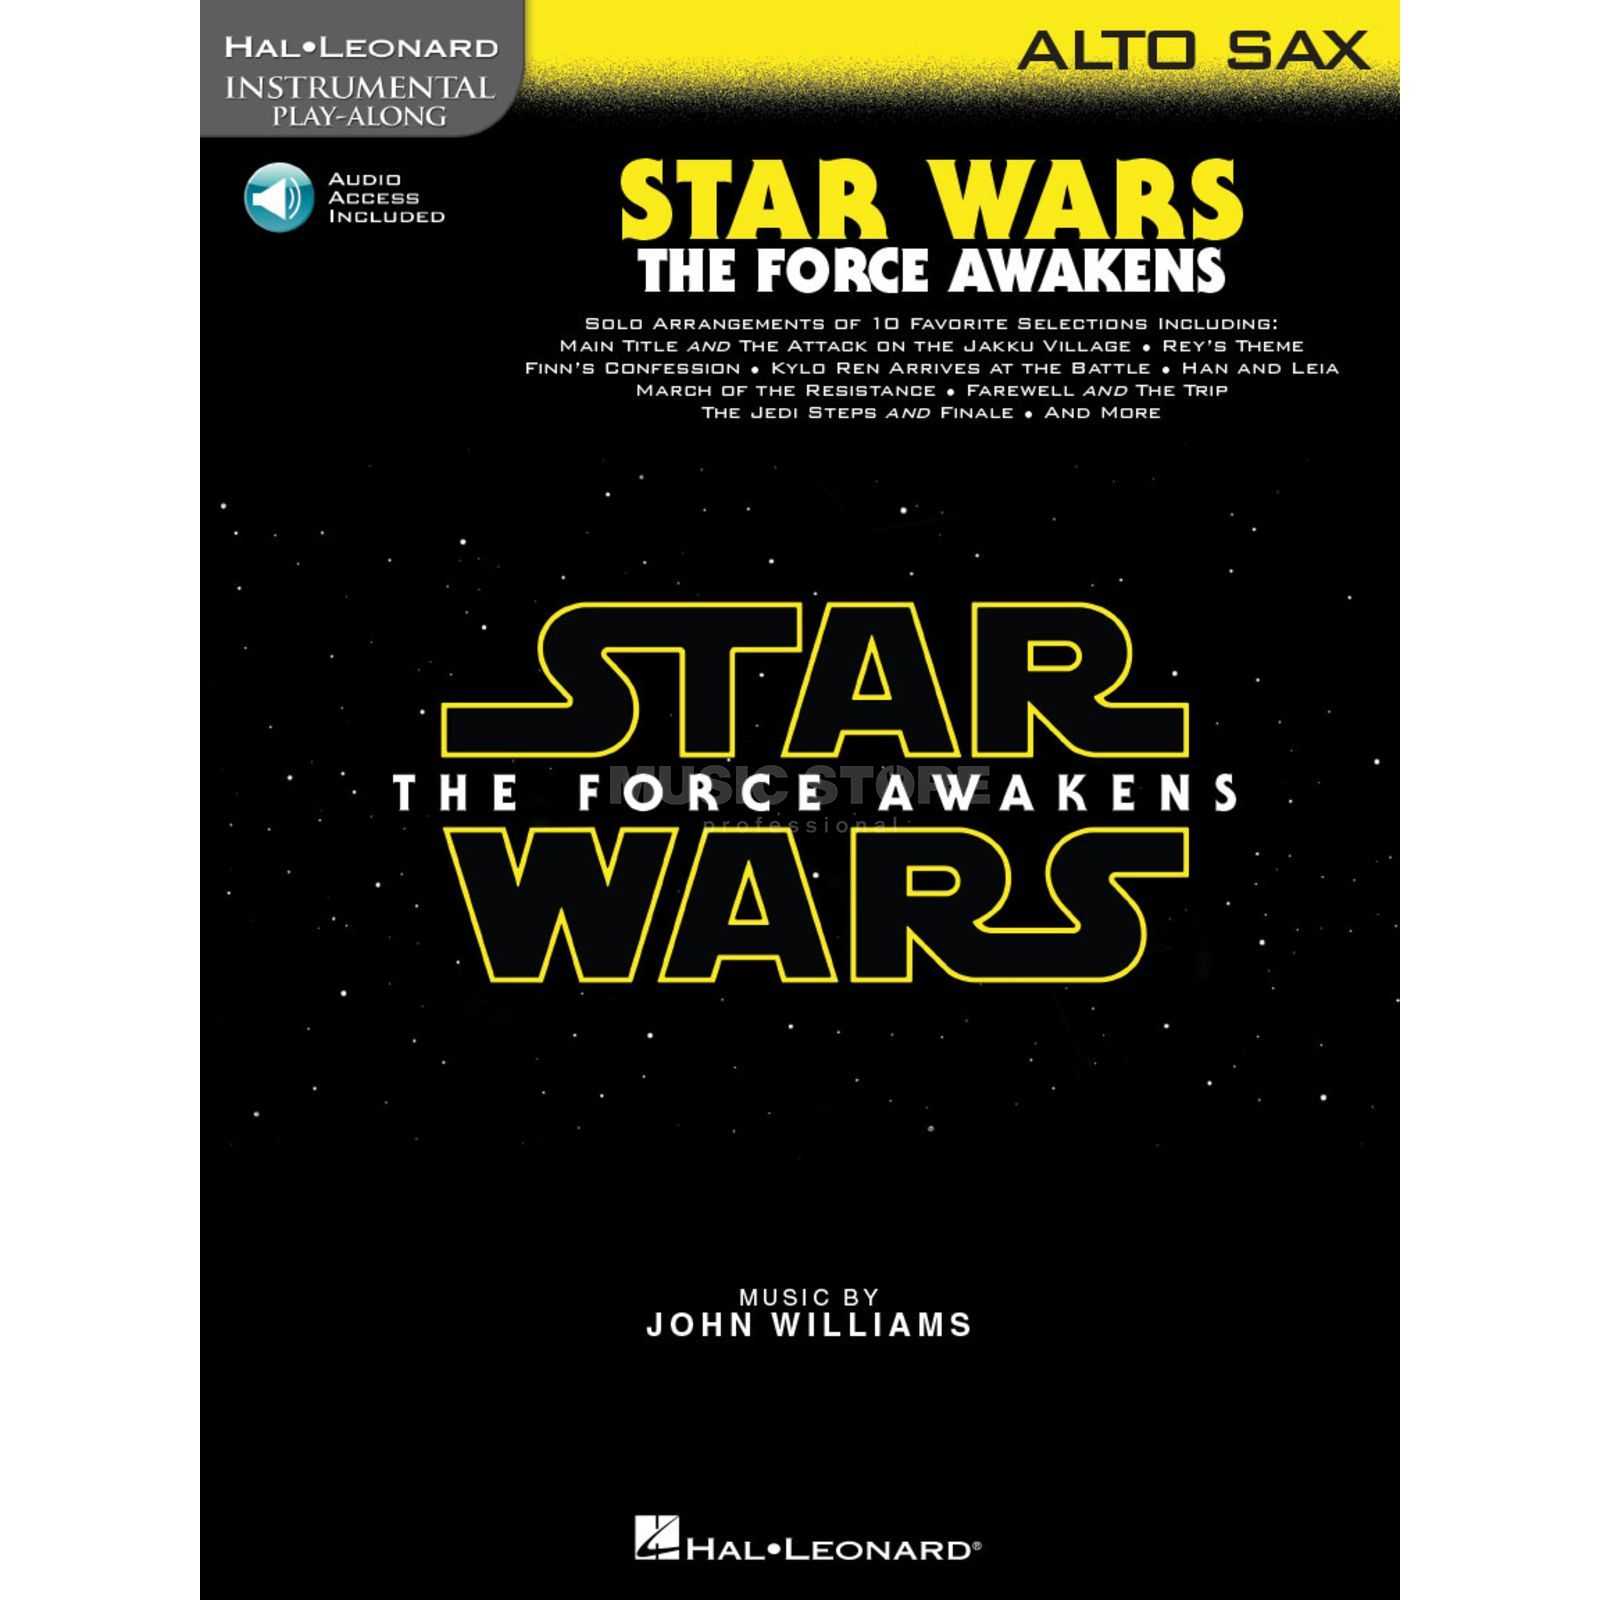 Hal Leonard Instrumental Play-Along: Star Wars - The Force Awakens - Alto Saxophone Imagen del producto